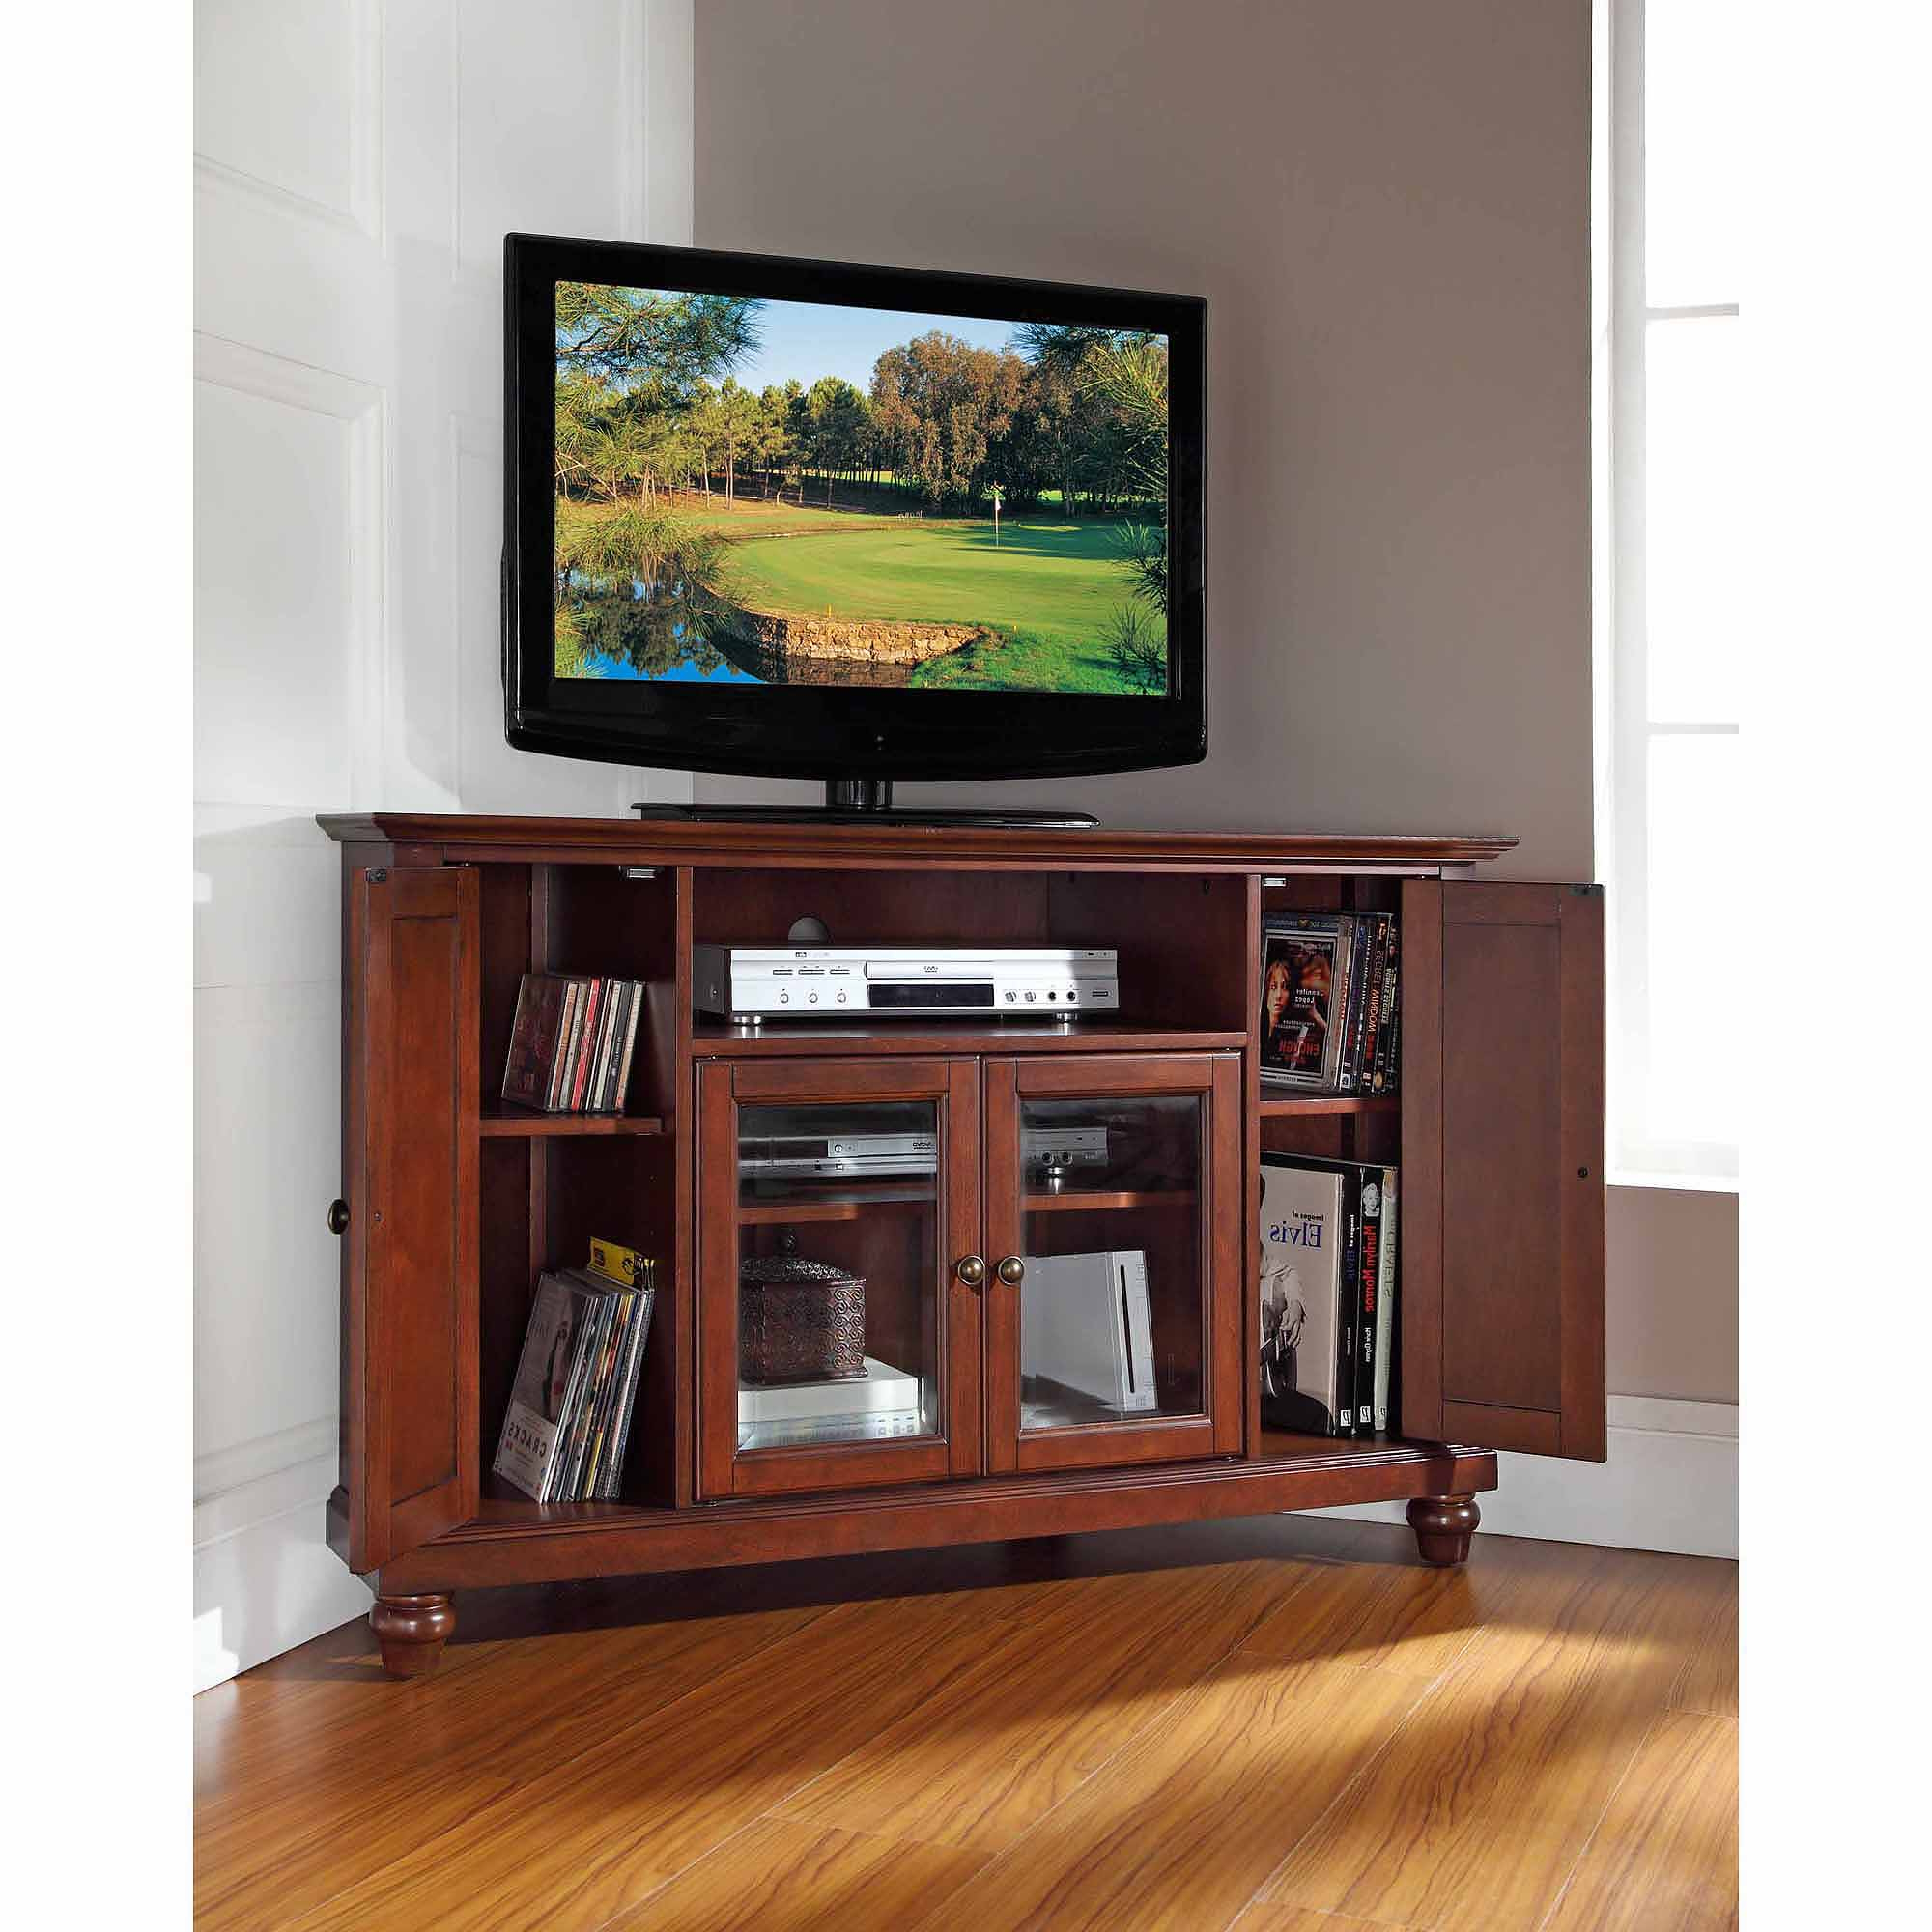 Widely Used Crosley Furniture Cambridge Corner Tv Stand For Tvs Up To 48 In Wooden Corner Tv Cabinets (View 8 of 20)